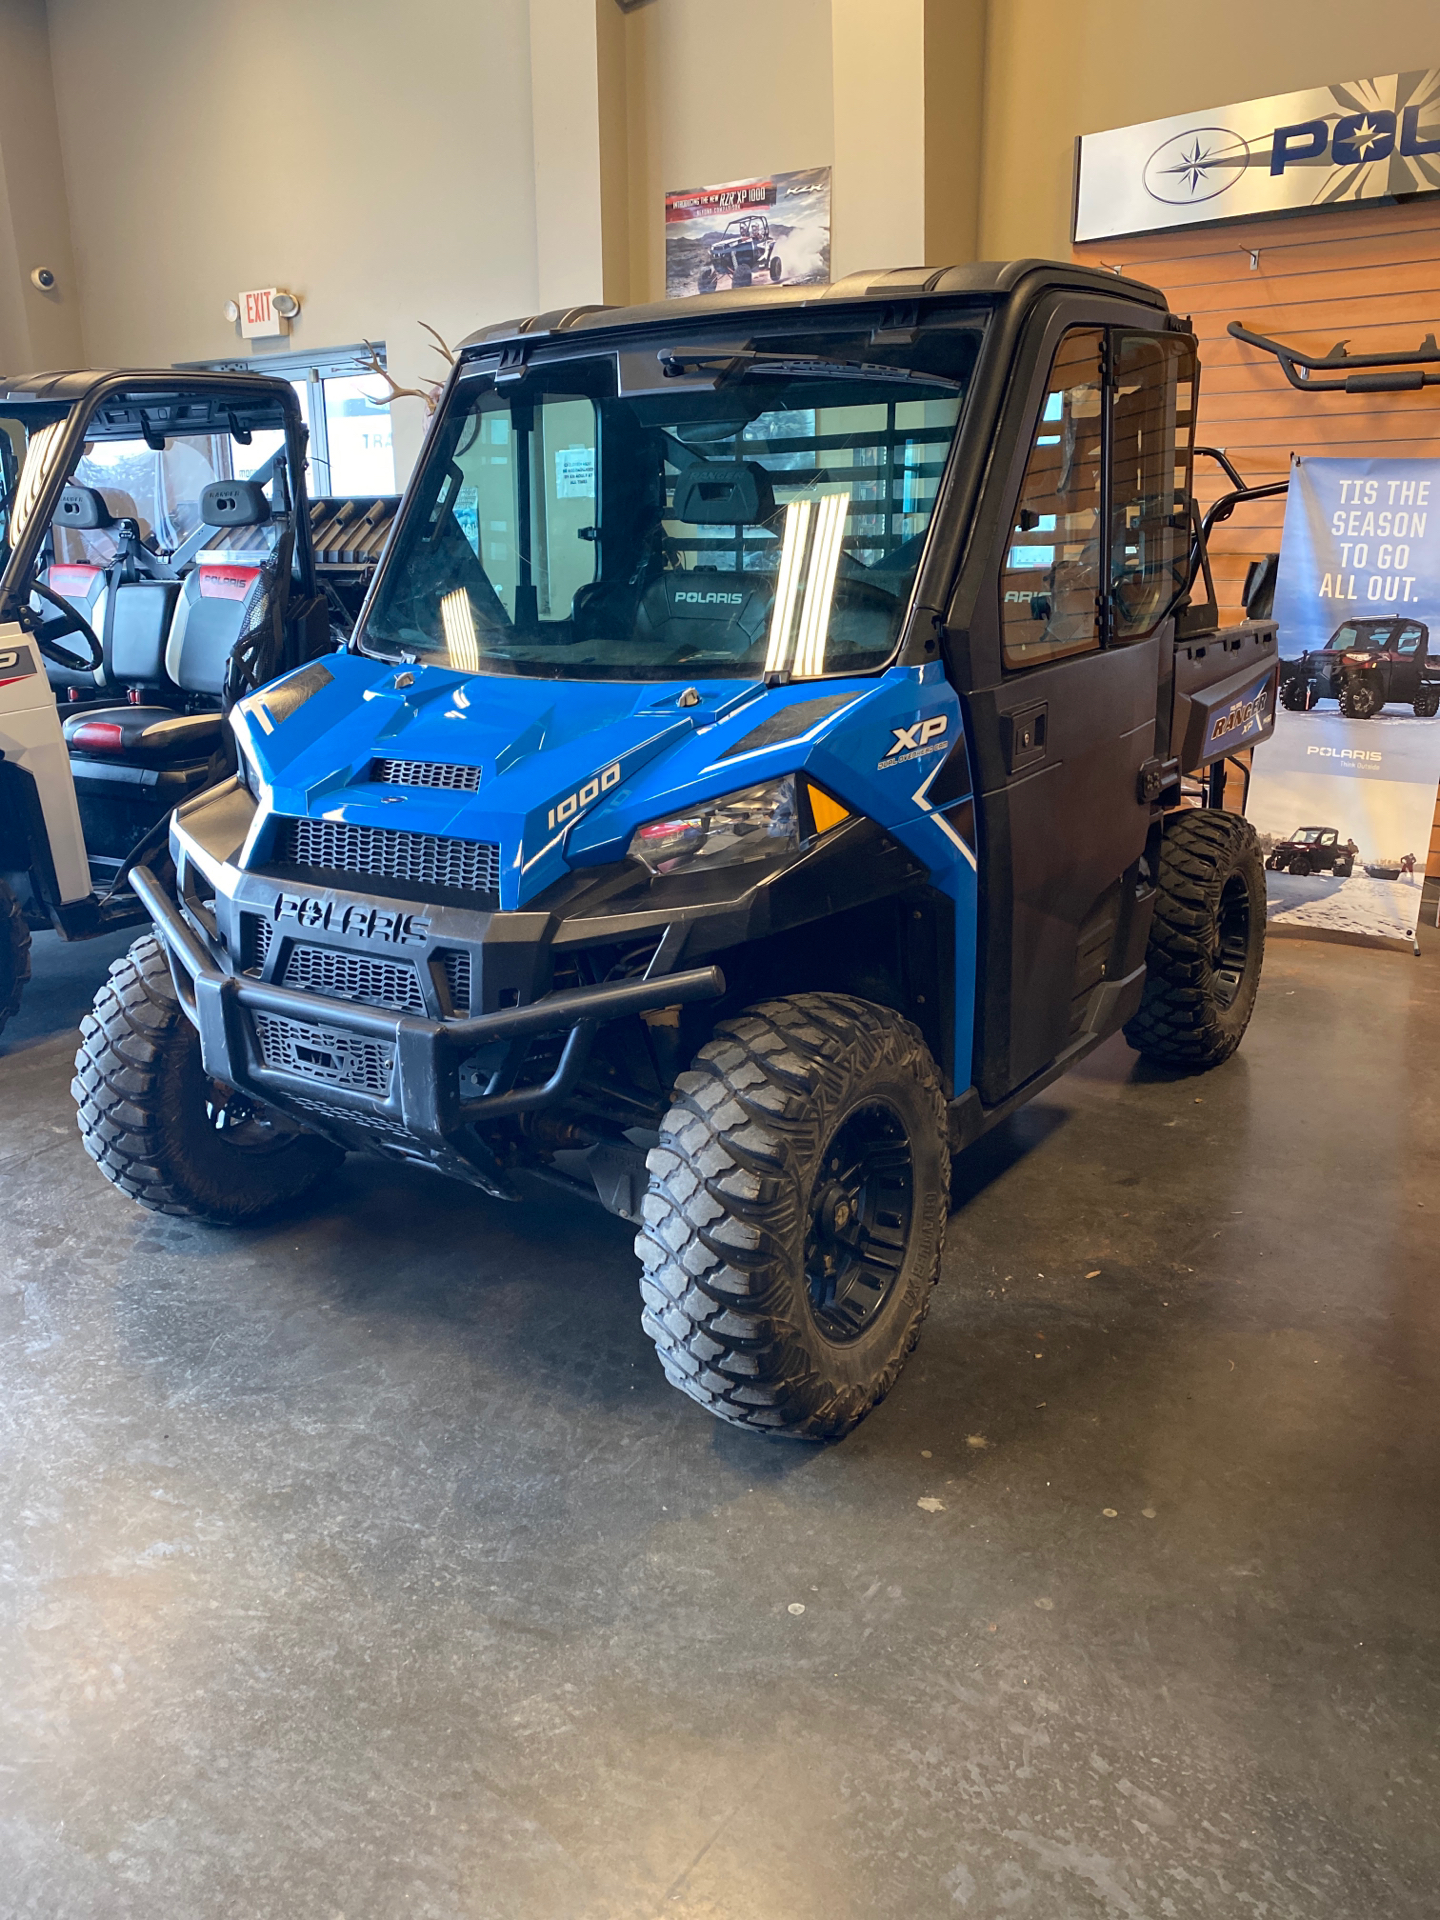 2017 Polaris Ranger XP 1000 EPS Northstar HVAC Edition in High Point, North Carolina - Photo 1